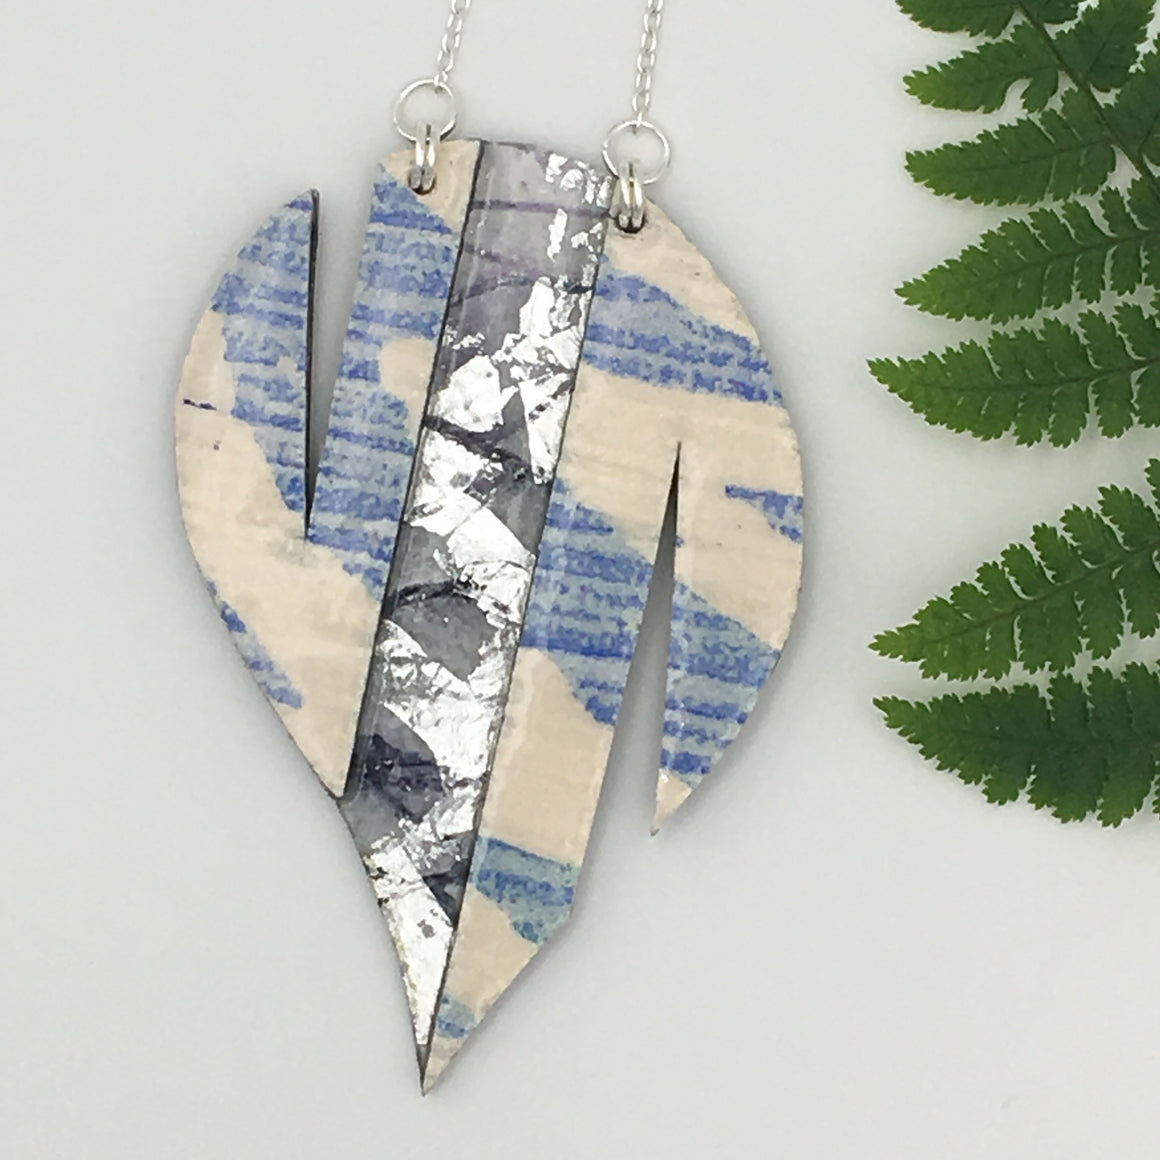 Thymian batik textile necklace in ice blue/silver/aubergine